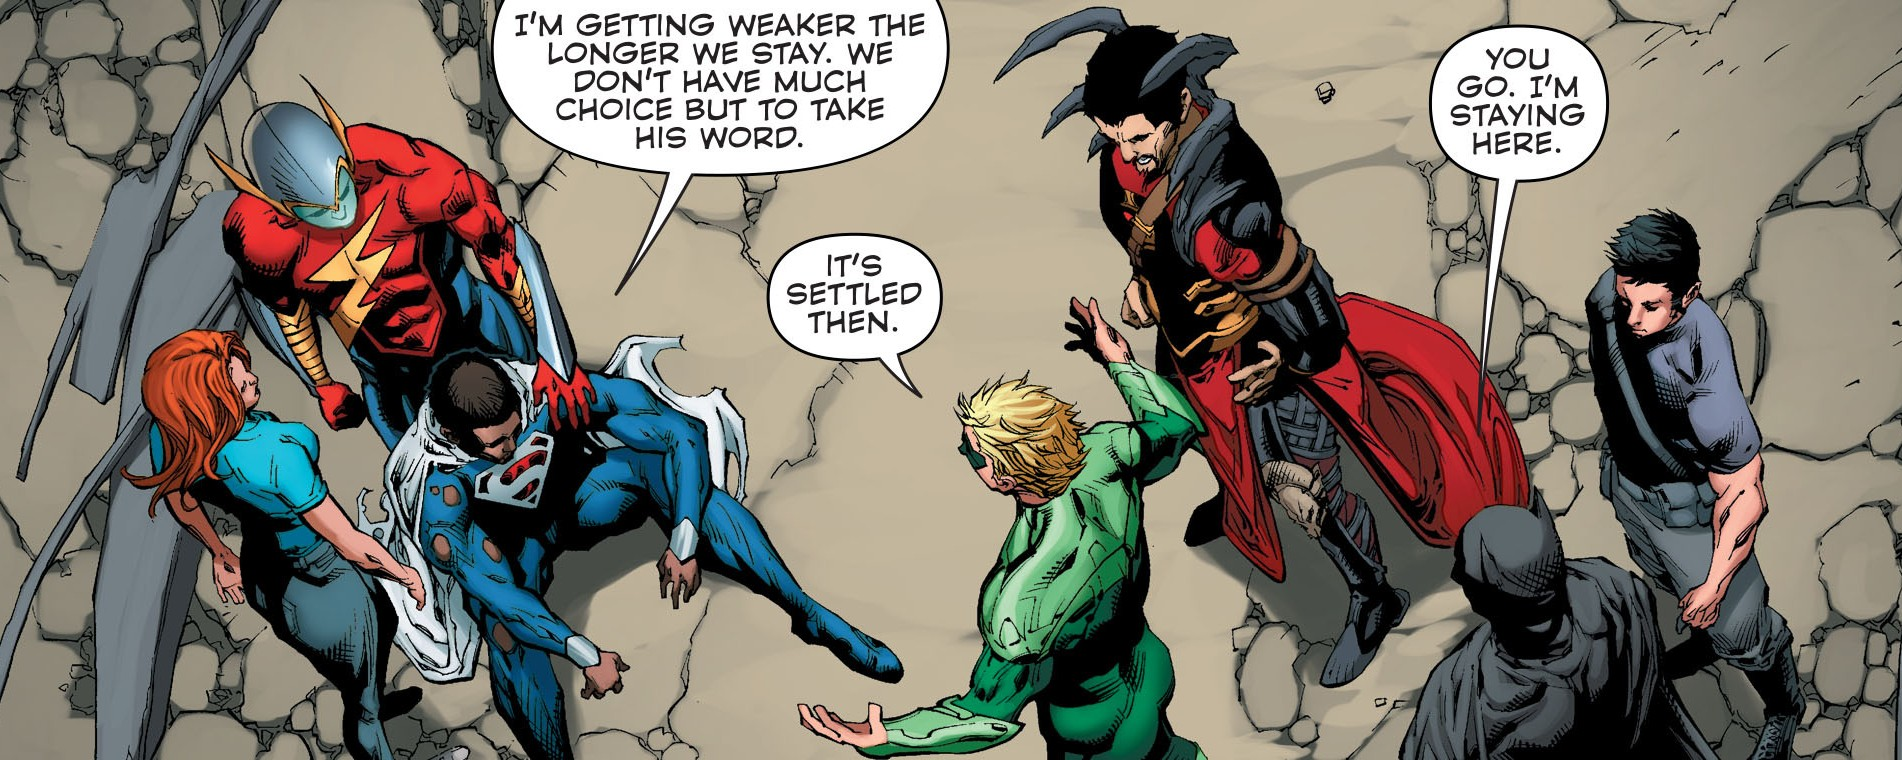 DC Comics Convergence #3 Spoilers Review 4